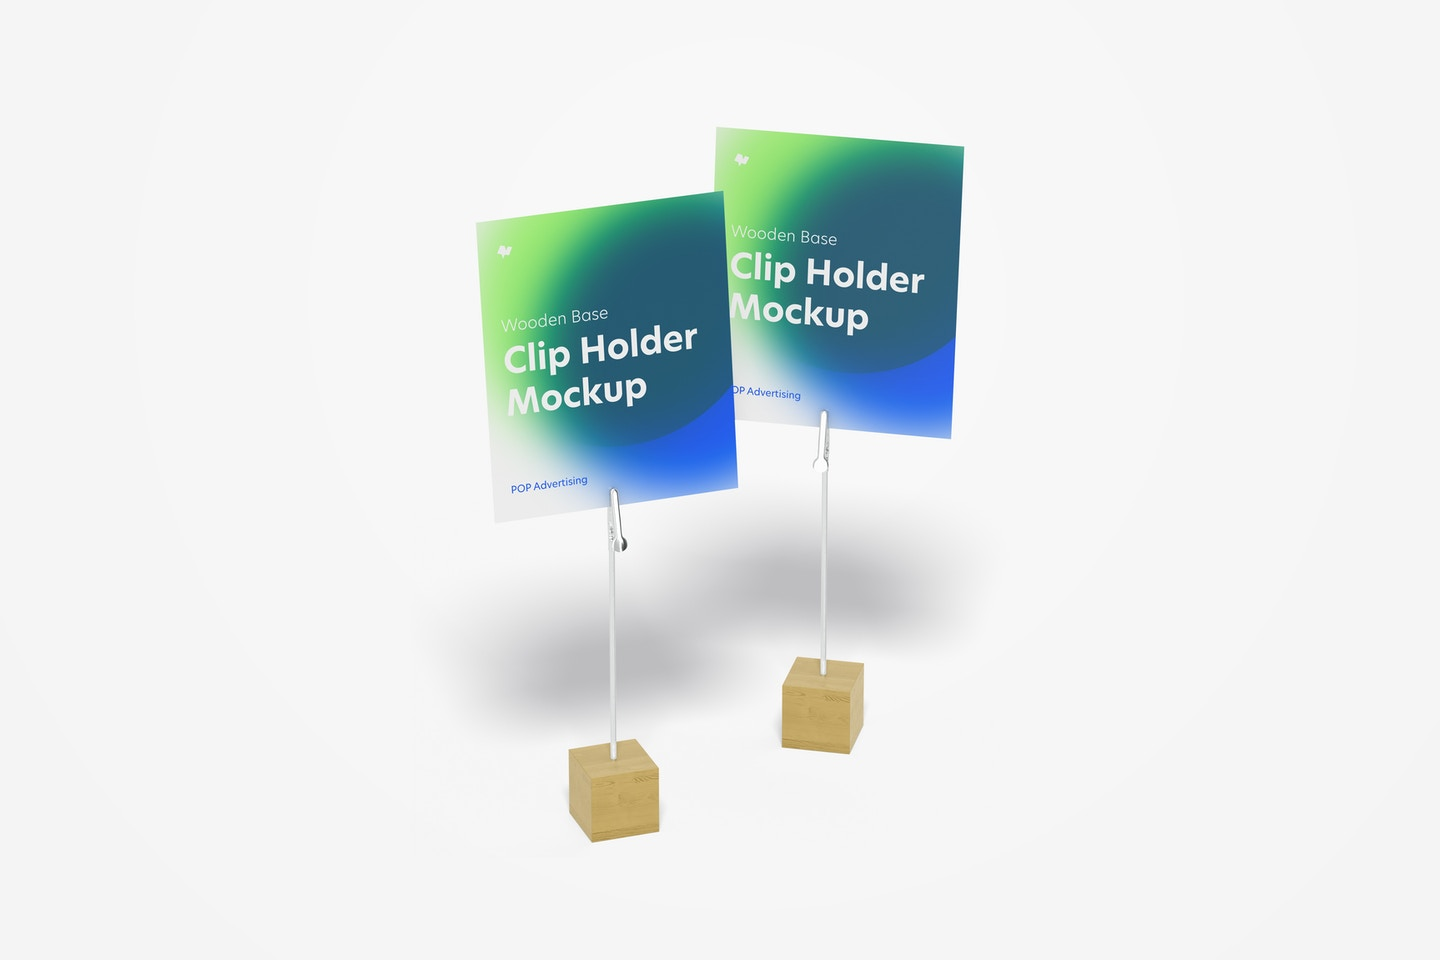 Wooden Base Photo Clip Holders Mockup, Perspective